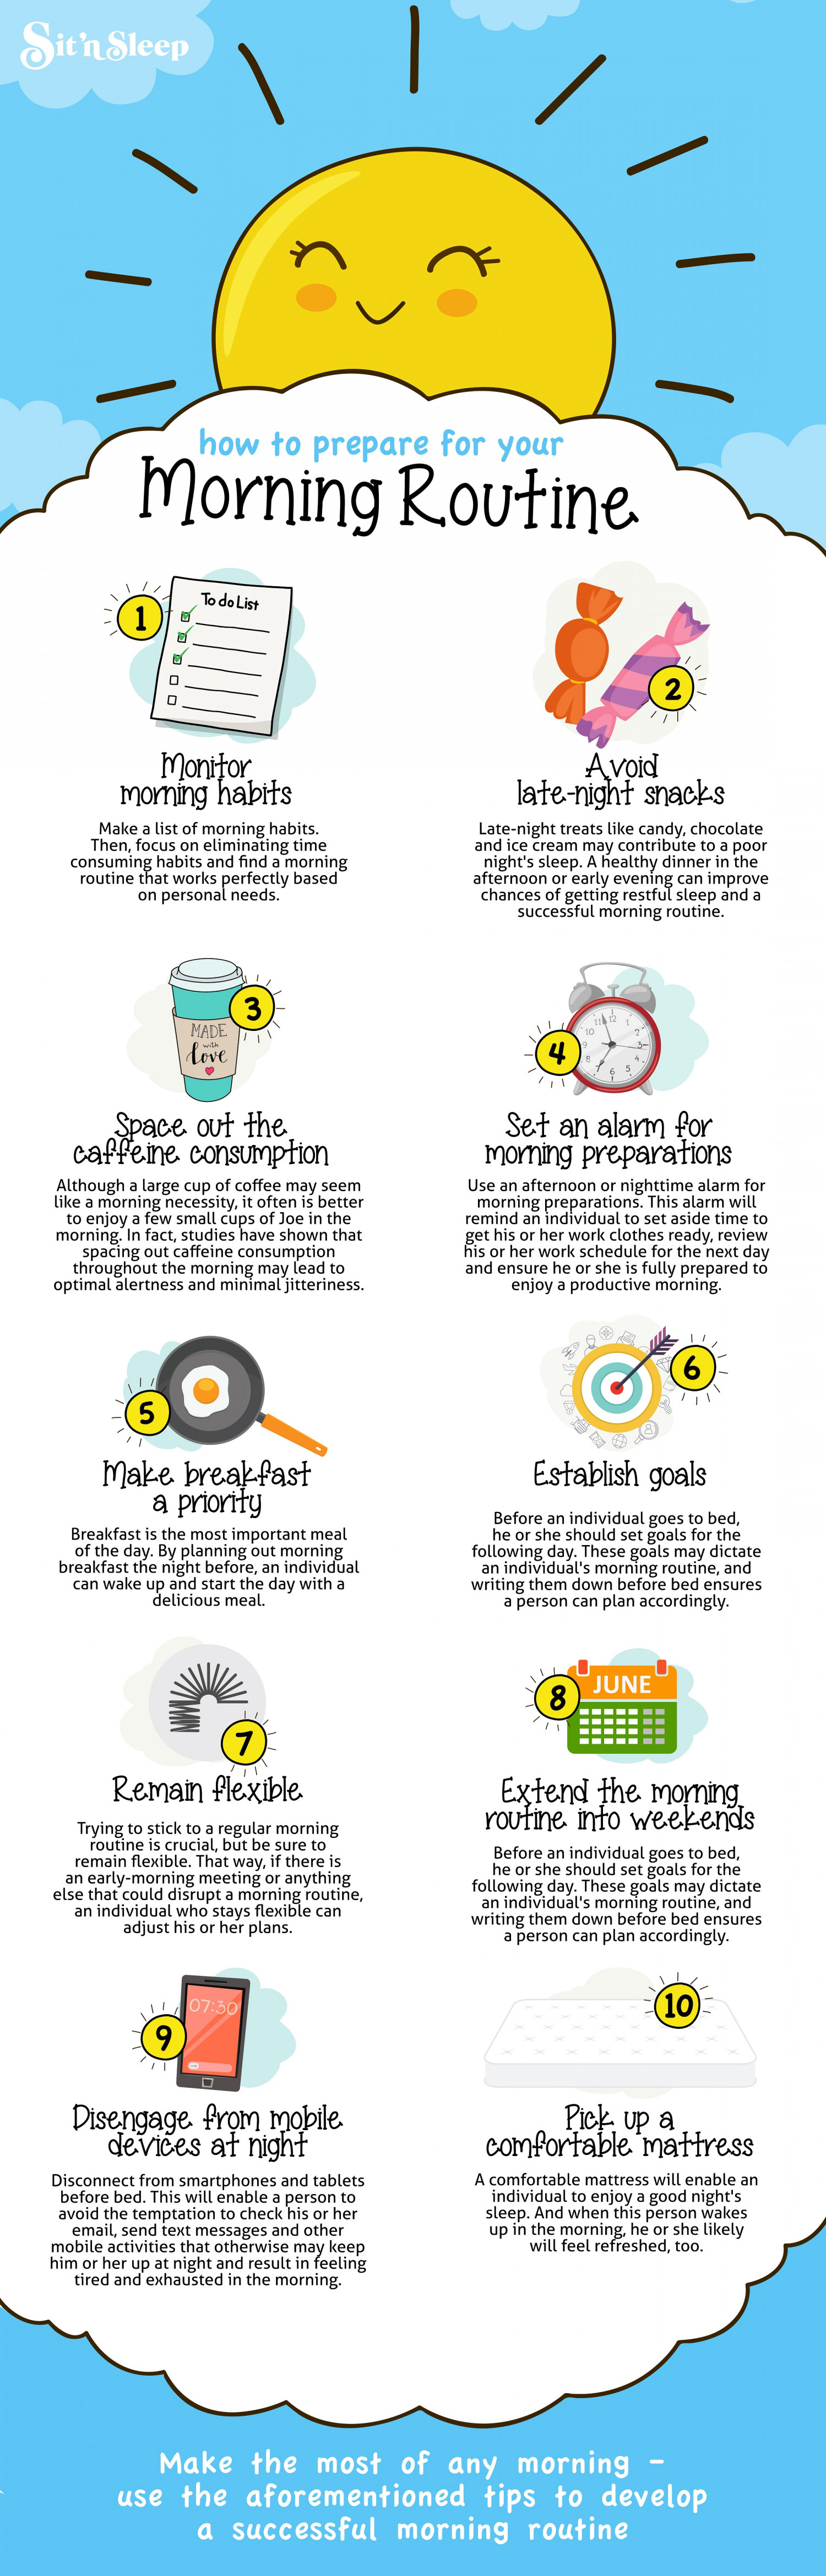 Simplify Your Morning Routine Infographic